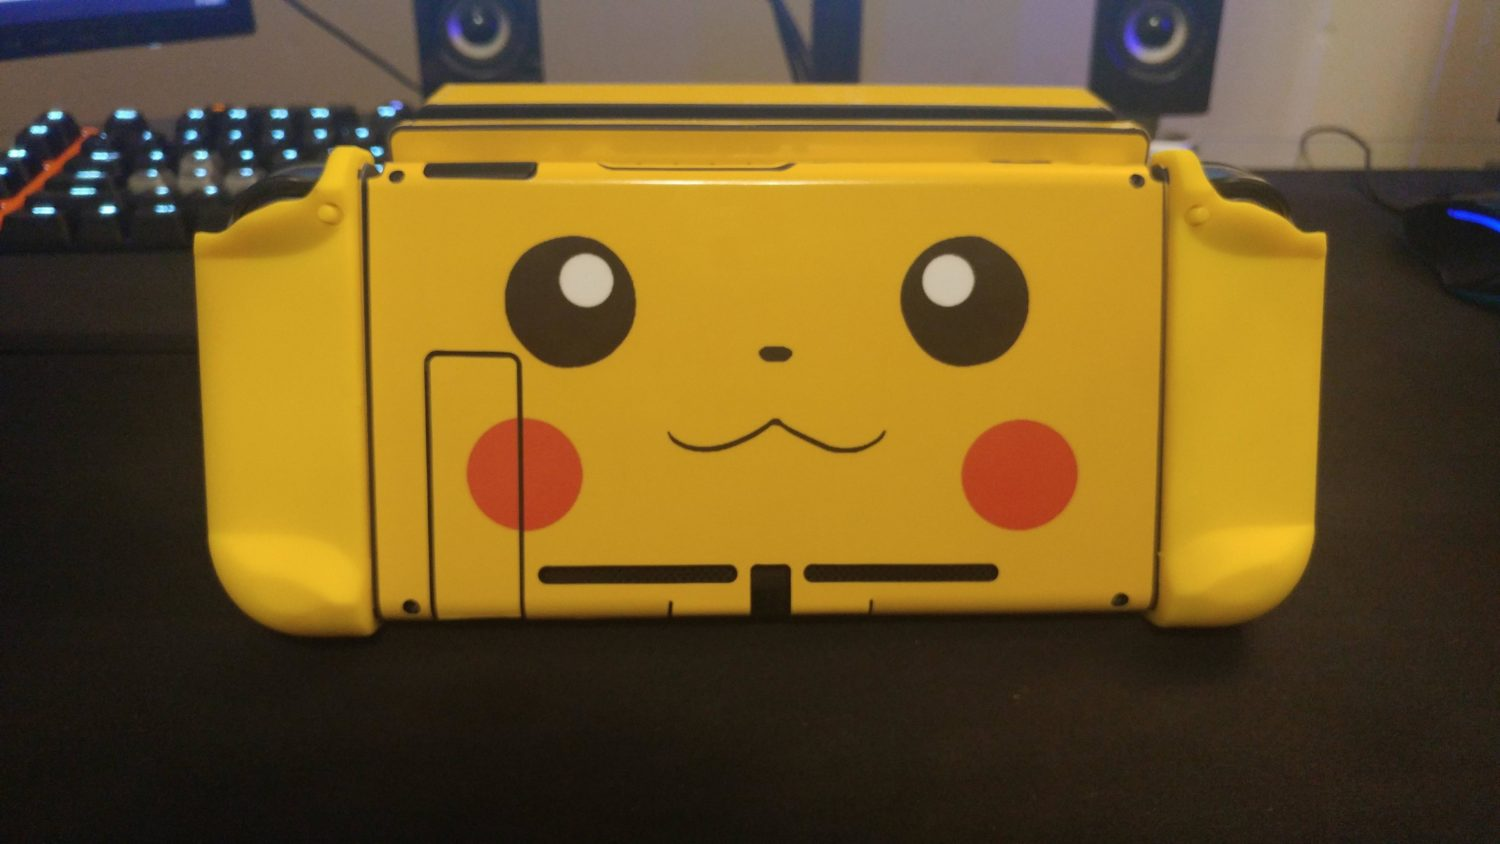 Nintendo Switch Gets A Gameboy Color Pikachu Makeover Nintendosoup New 3ds Xl Yellow Edition Heres How The Joy Con And Console Looks Like When Docked To Play In Tv Mode